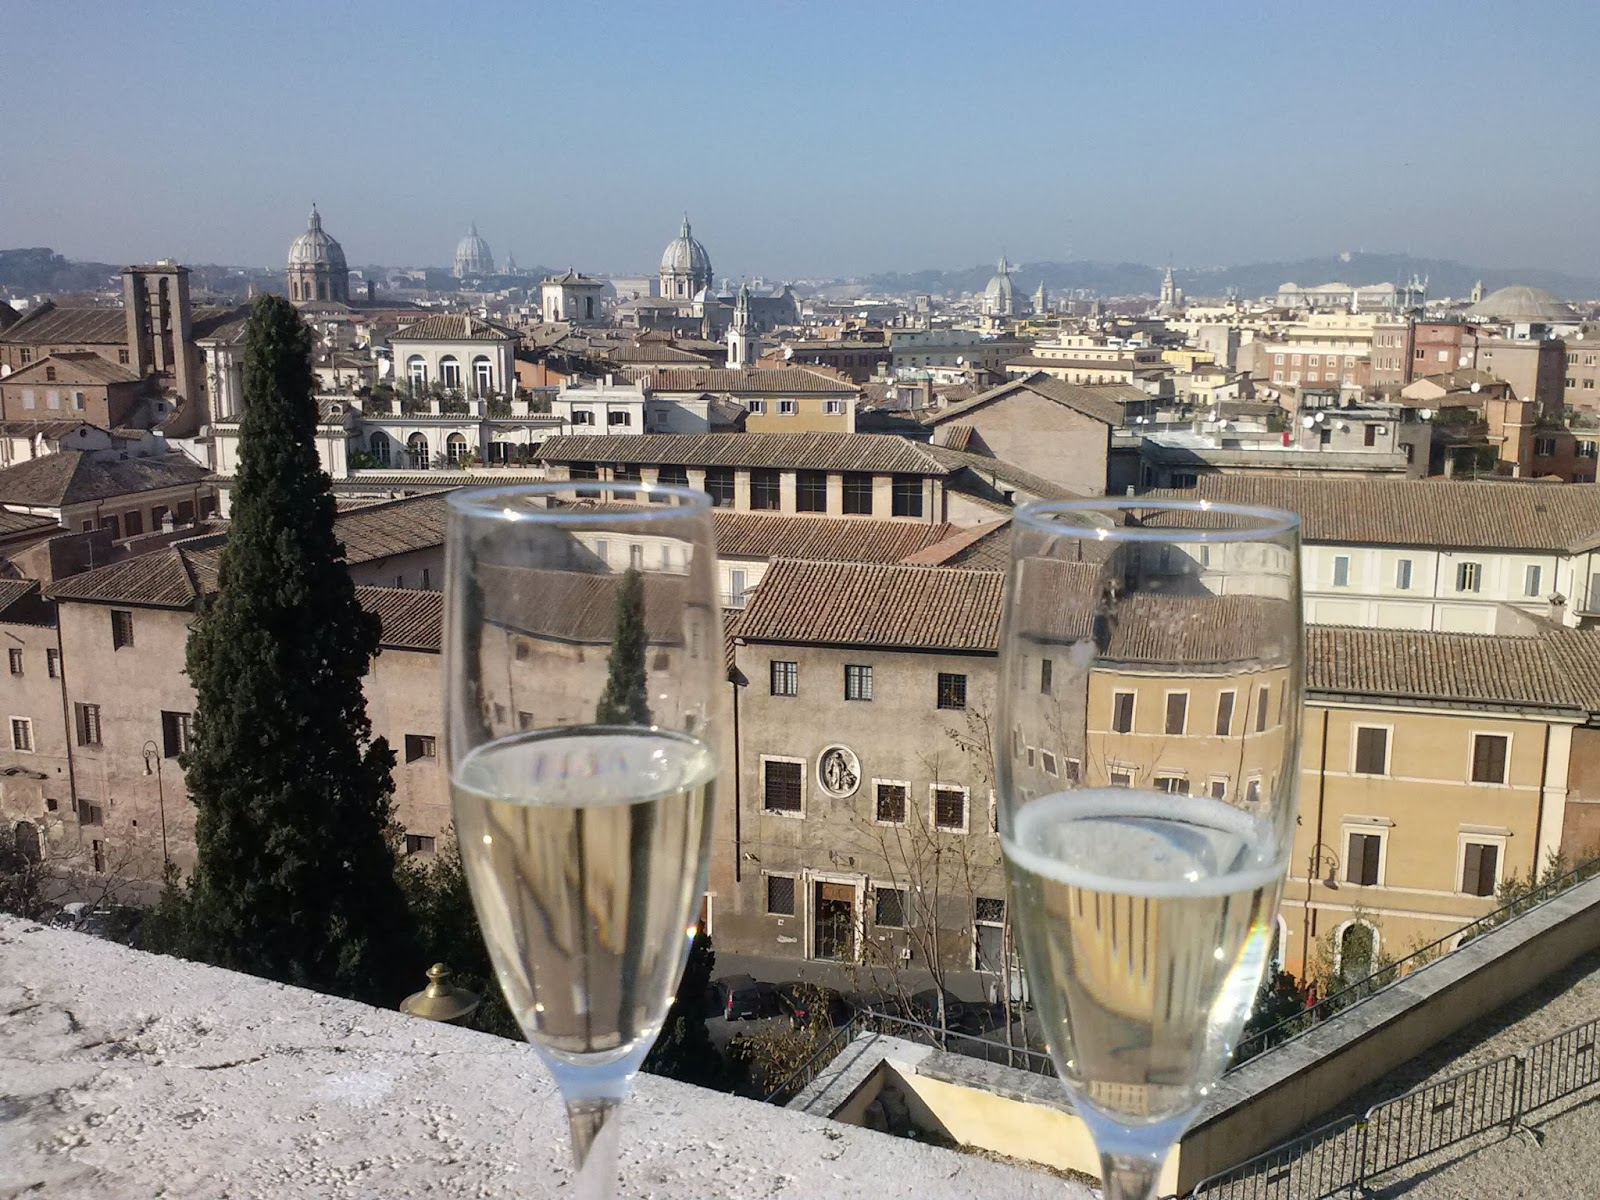 TheWineBlog: Four Days in Rome by Philip S. Kampe and Maria Reveley